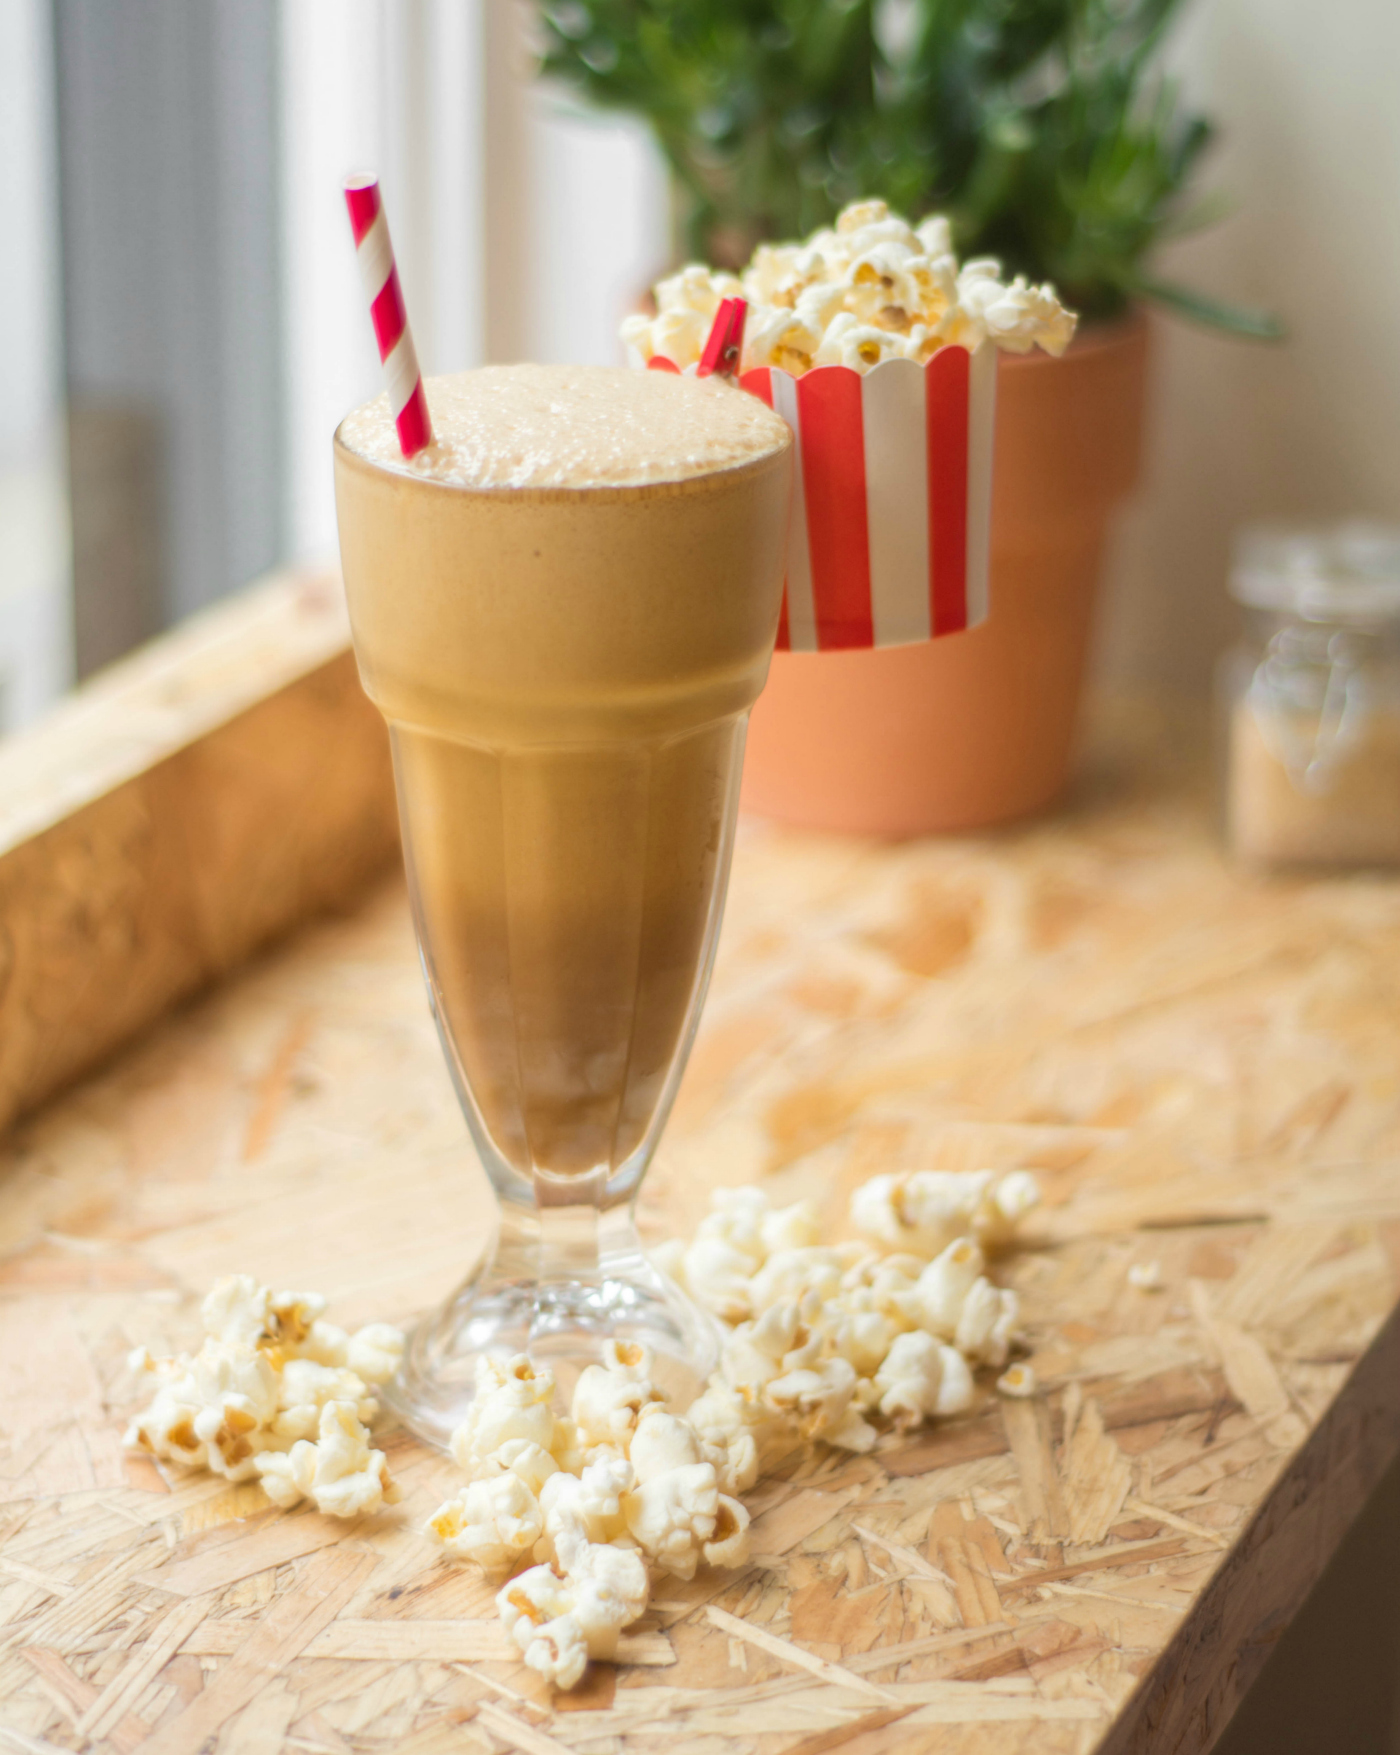 The Weekly Cocktail Trend Recipe: Tia Maria Iced Popcorn Frappe